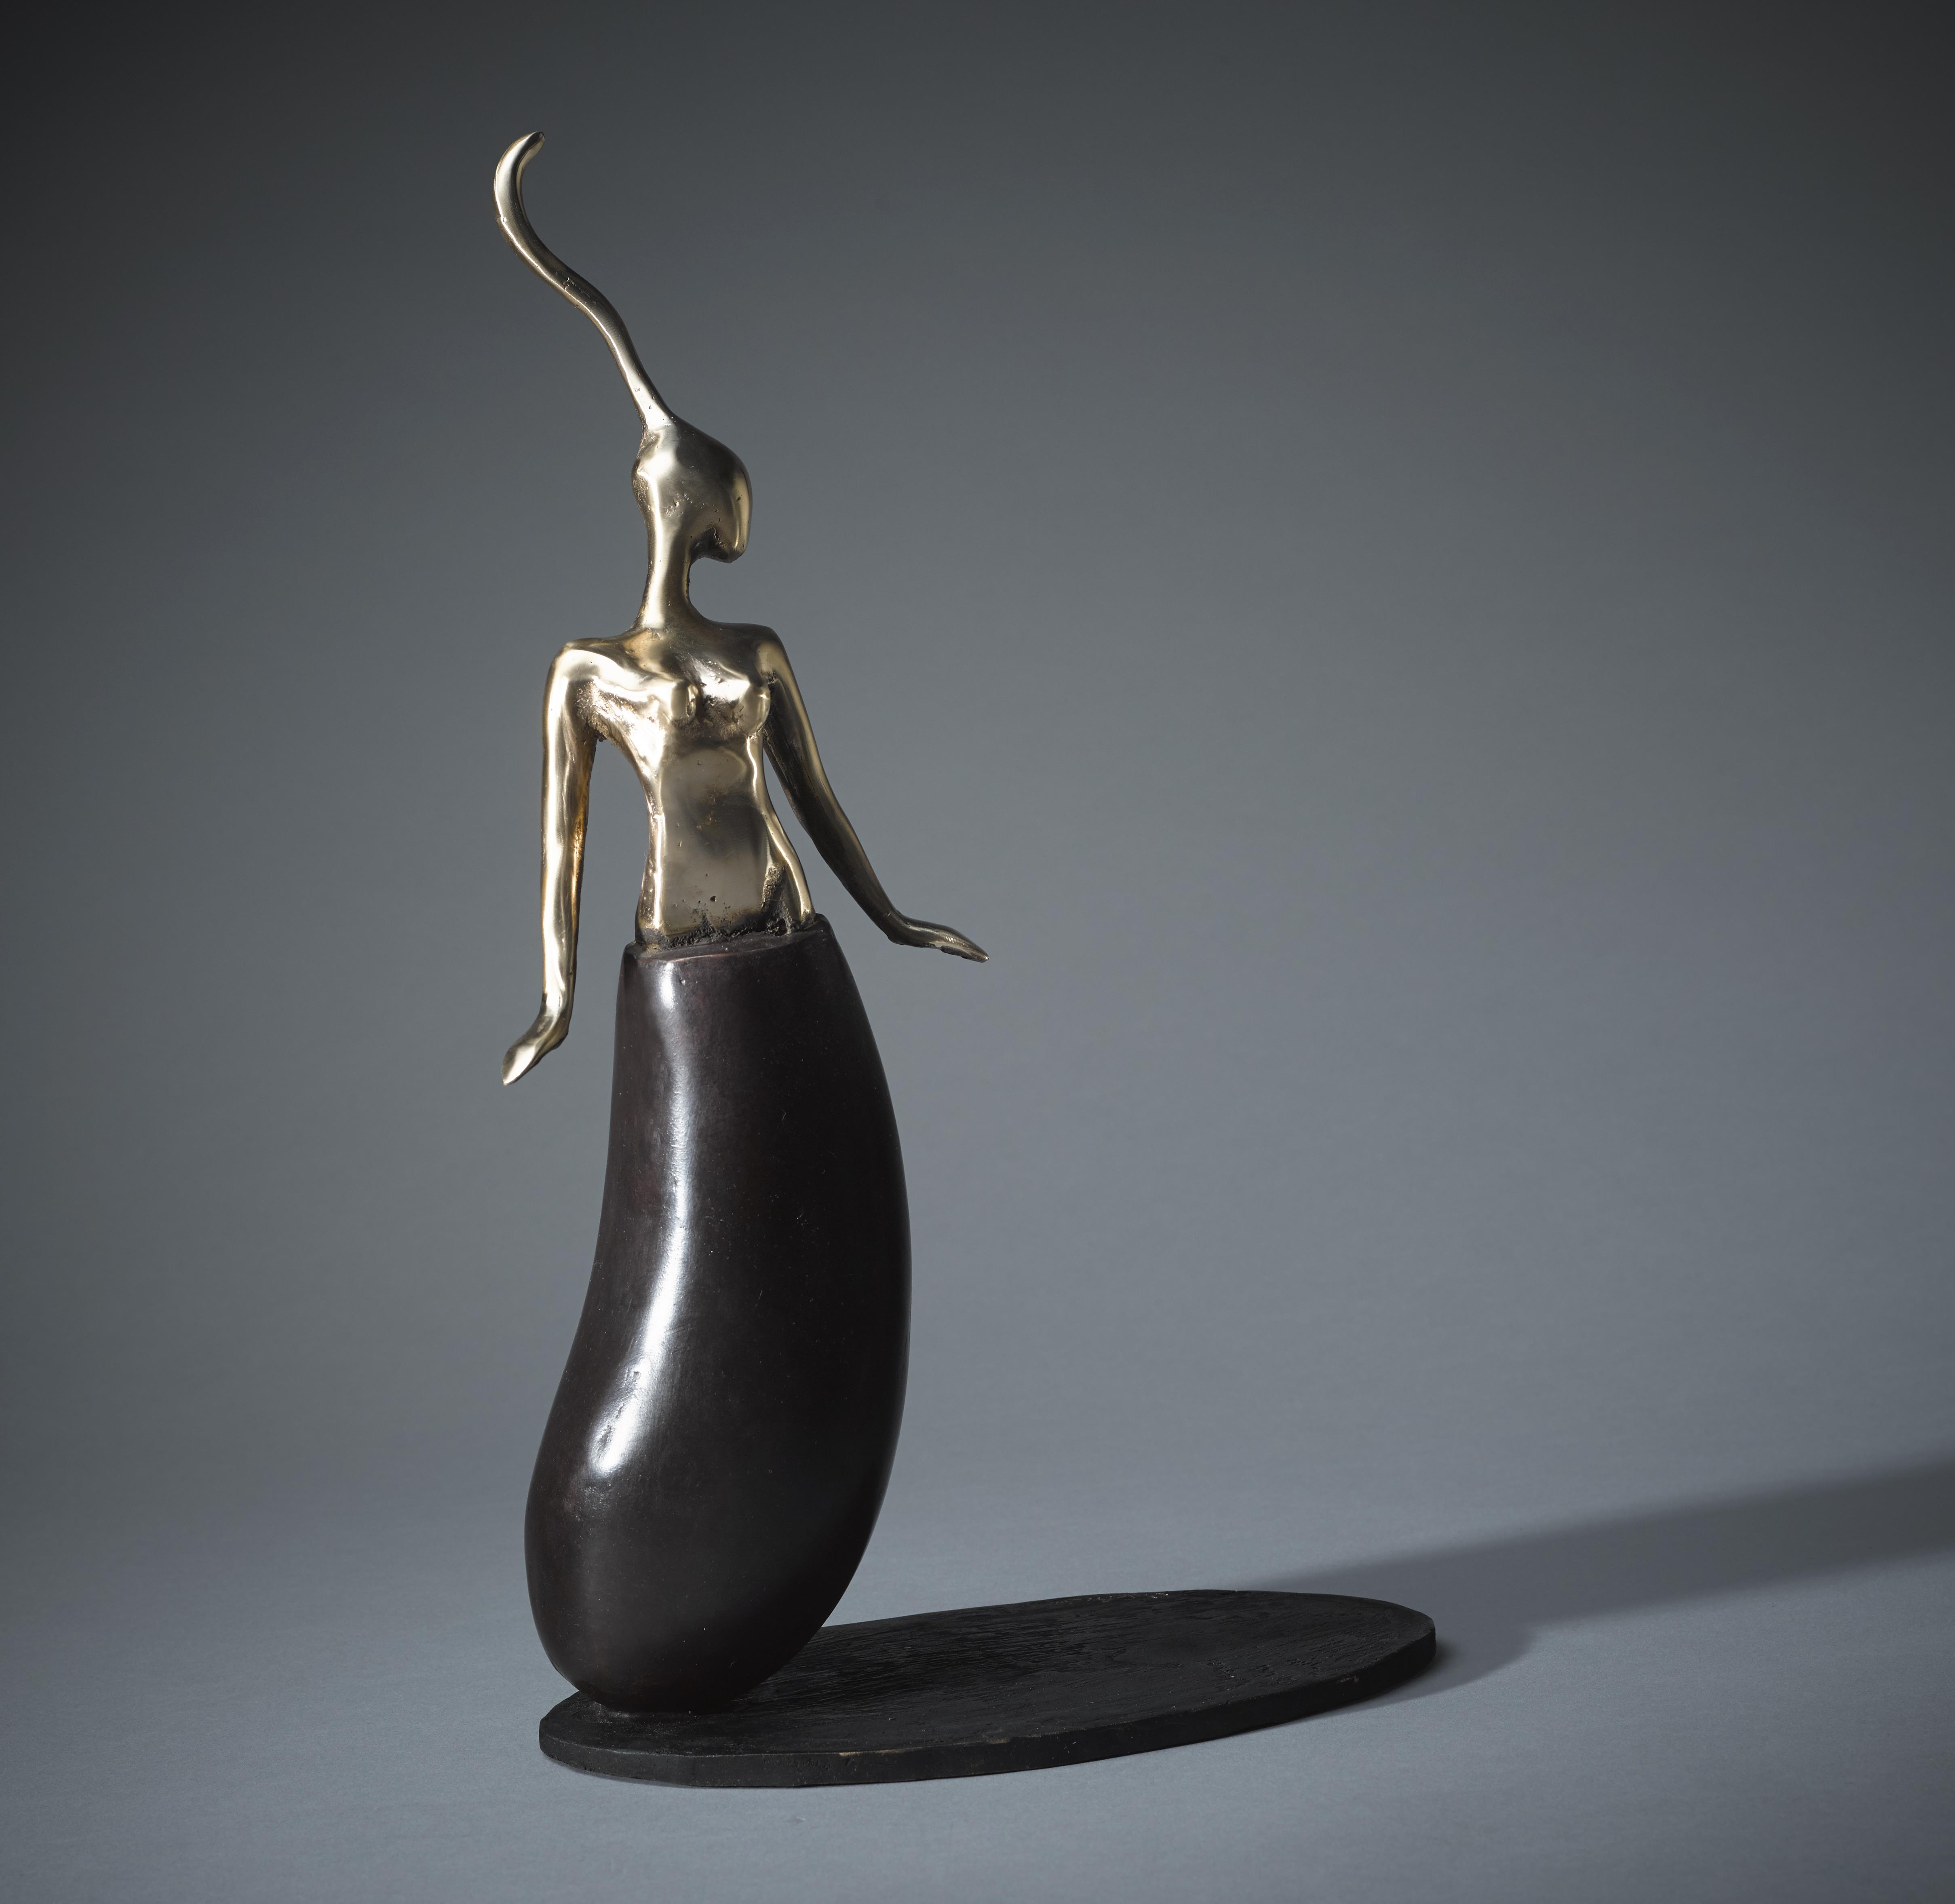 'Mademoiselle Aubergine' 16 x  10.5 x 4.5in,  Edt 3 of 5 - £4400